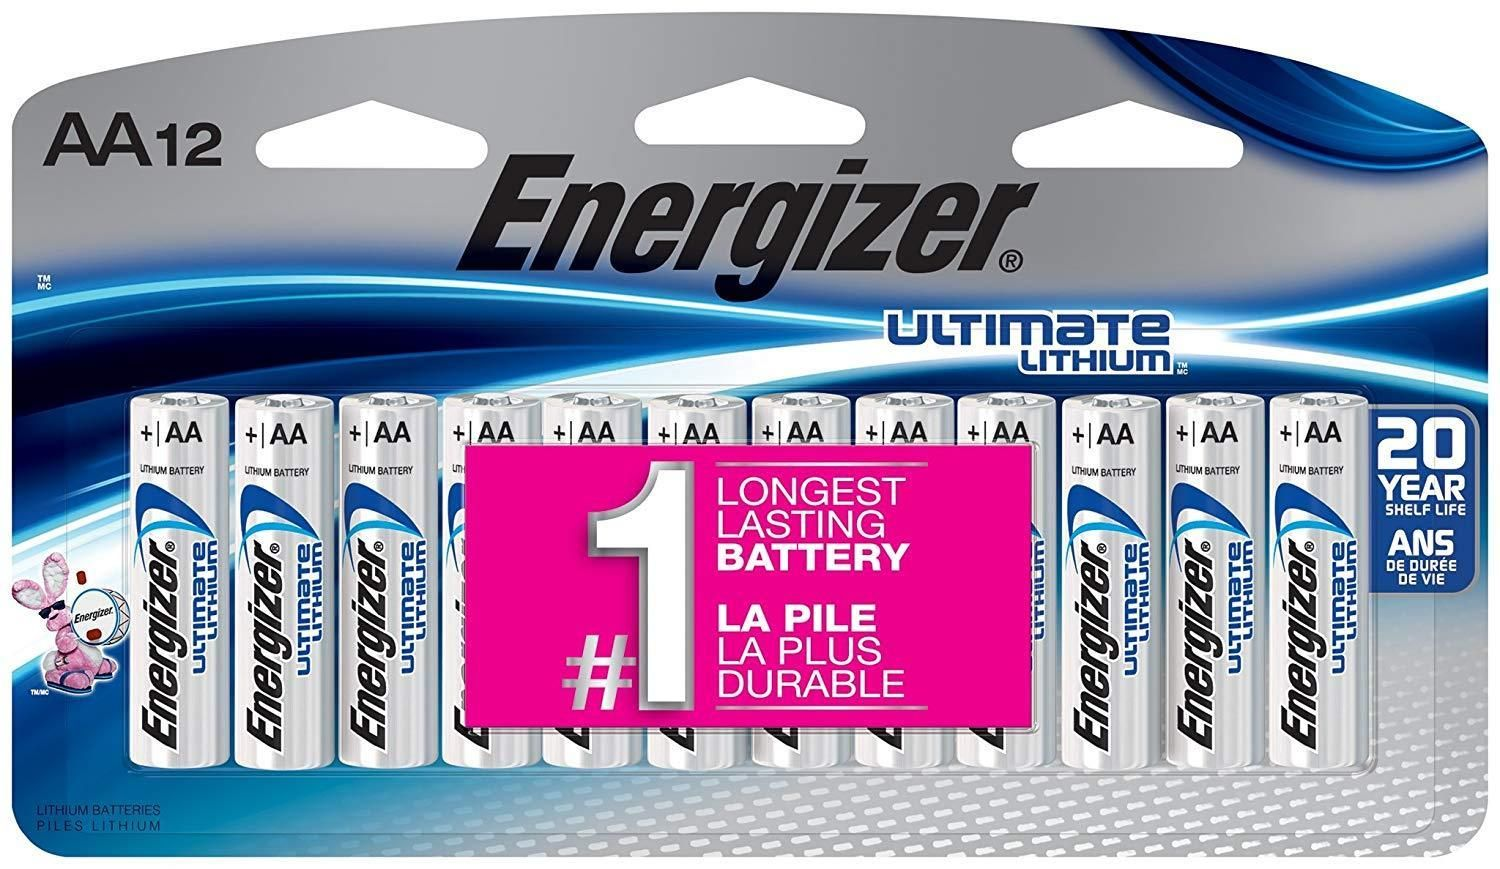 Energizer L91sbp 12 Ultimate Lithium Aa Universal Battery 12pk 9 04 After Coupon And 15 S S Energizer Jump A Car Battery Lithium Battery